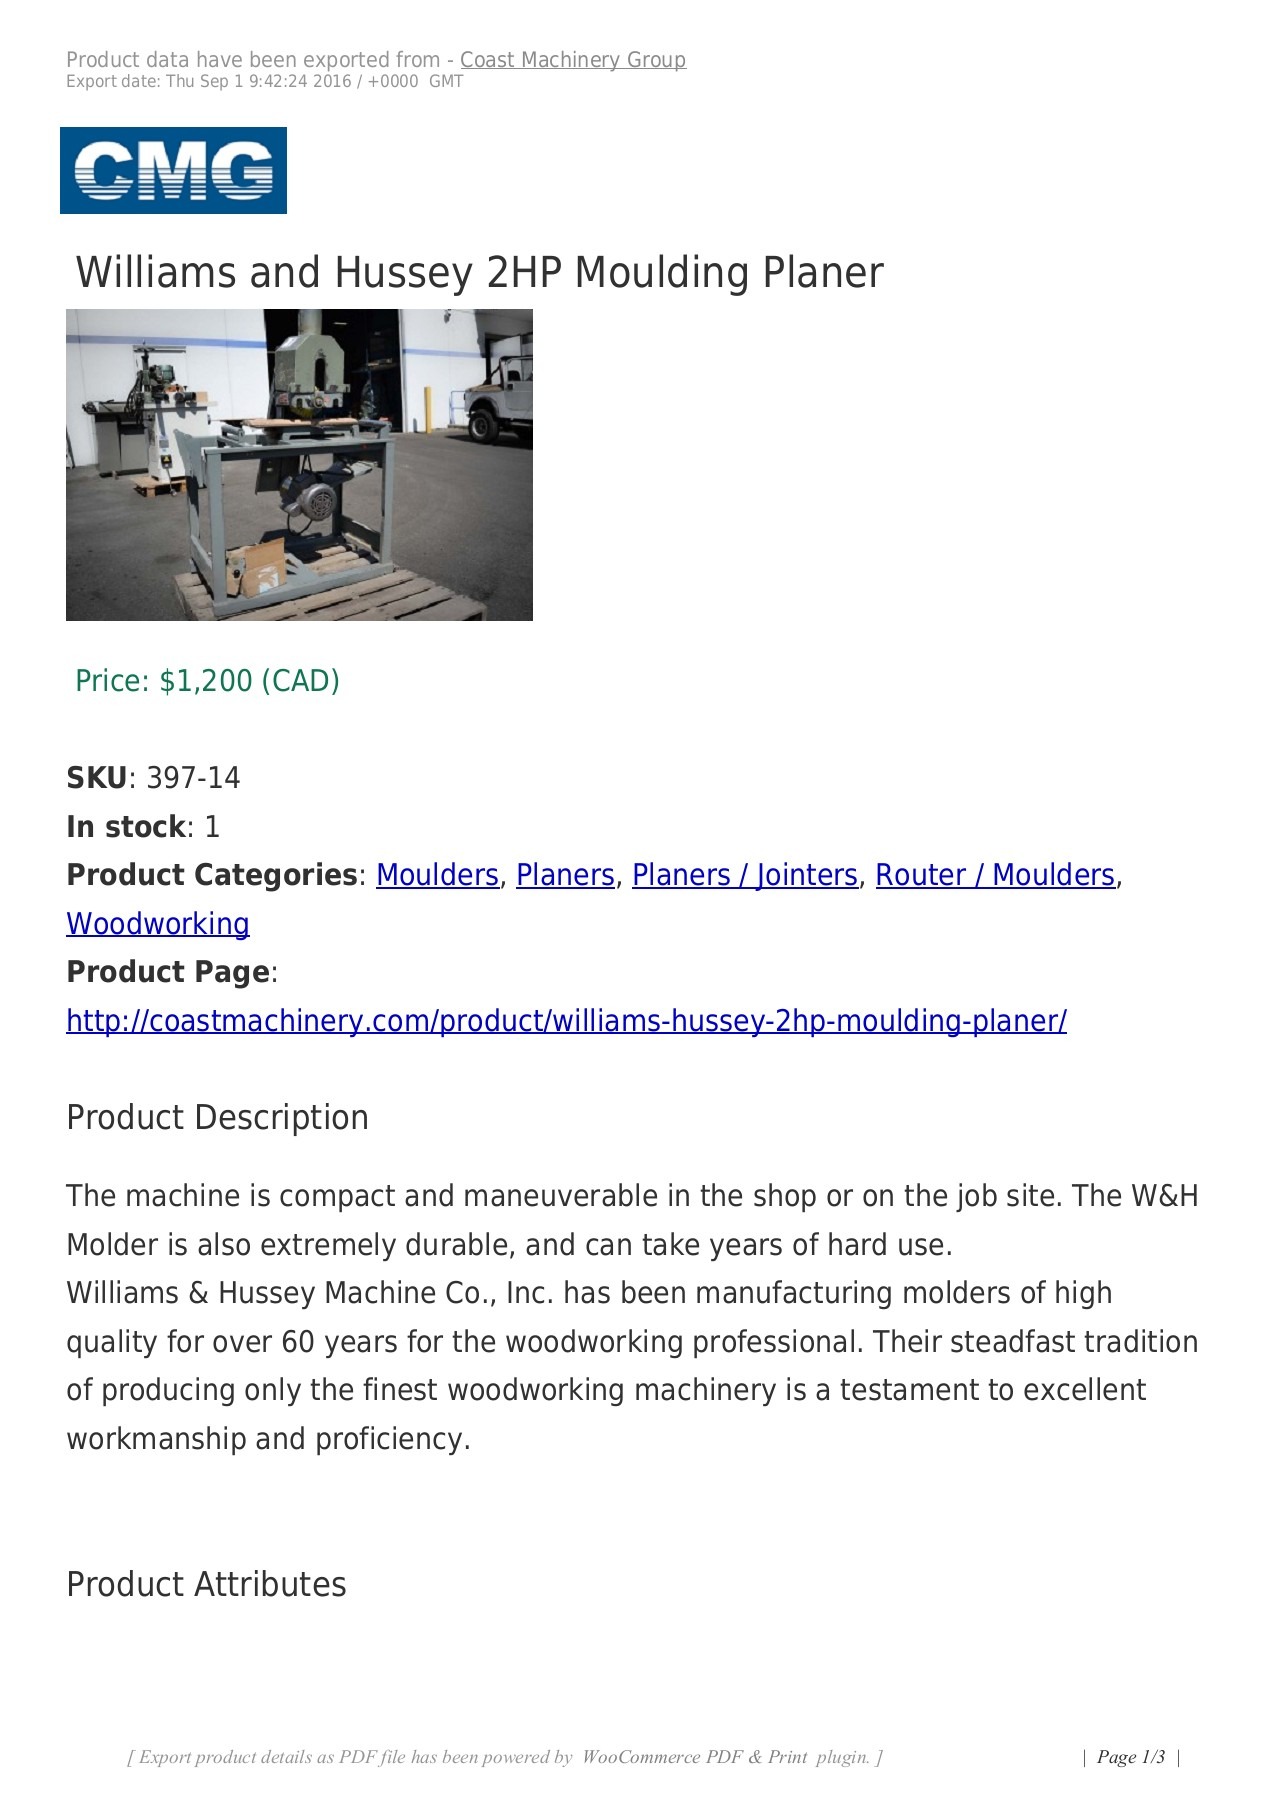 Williams and Hussey 2HP Moulding Planer Pages 1 - 3 - Text